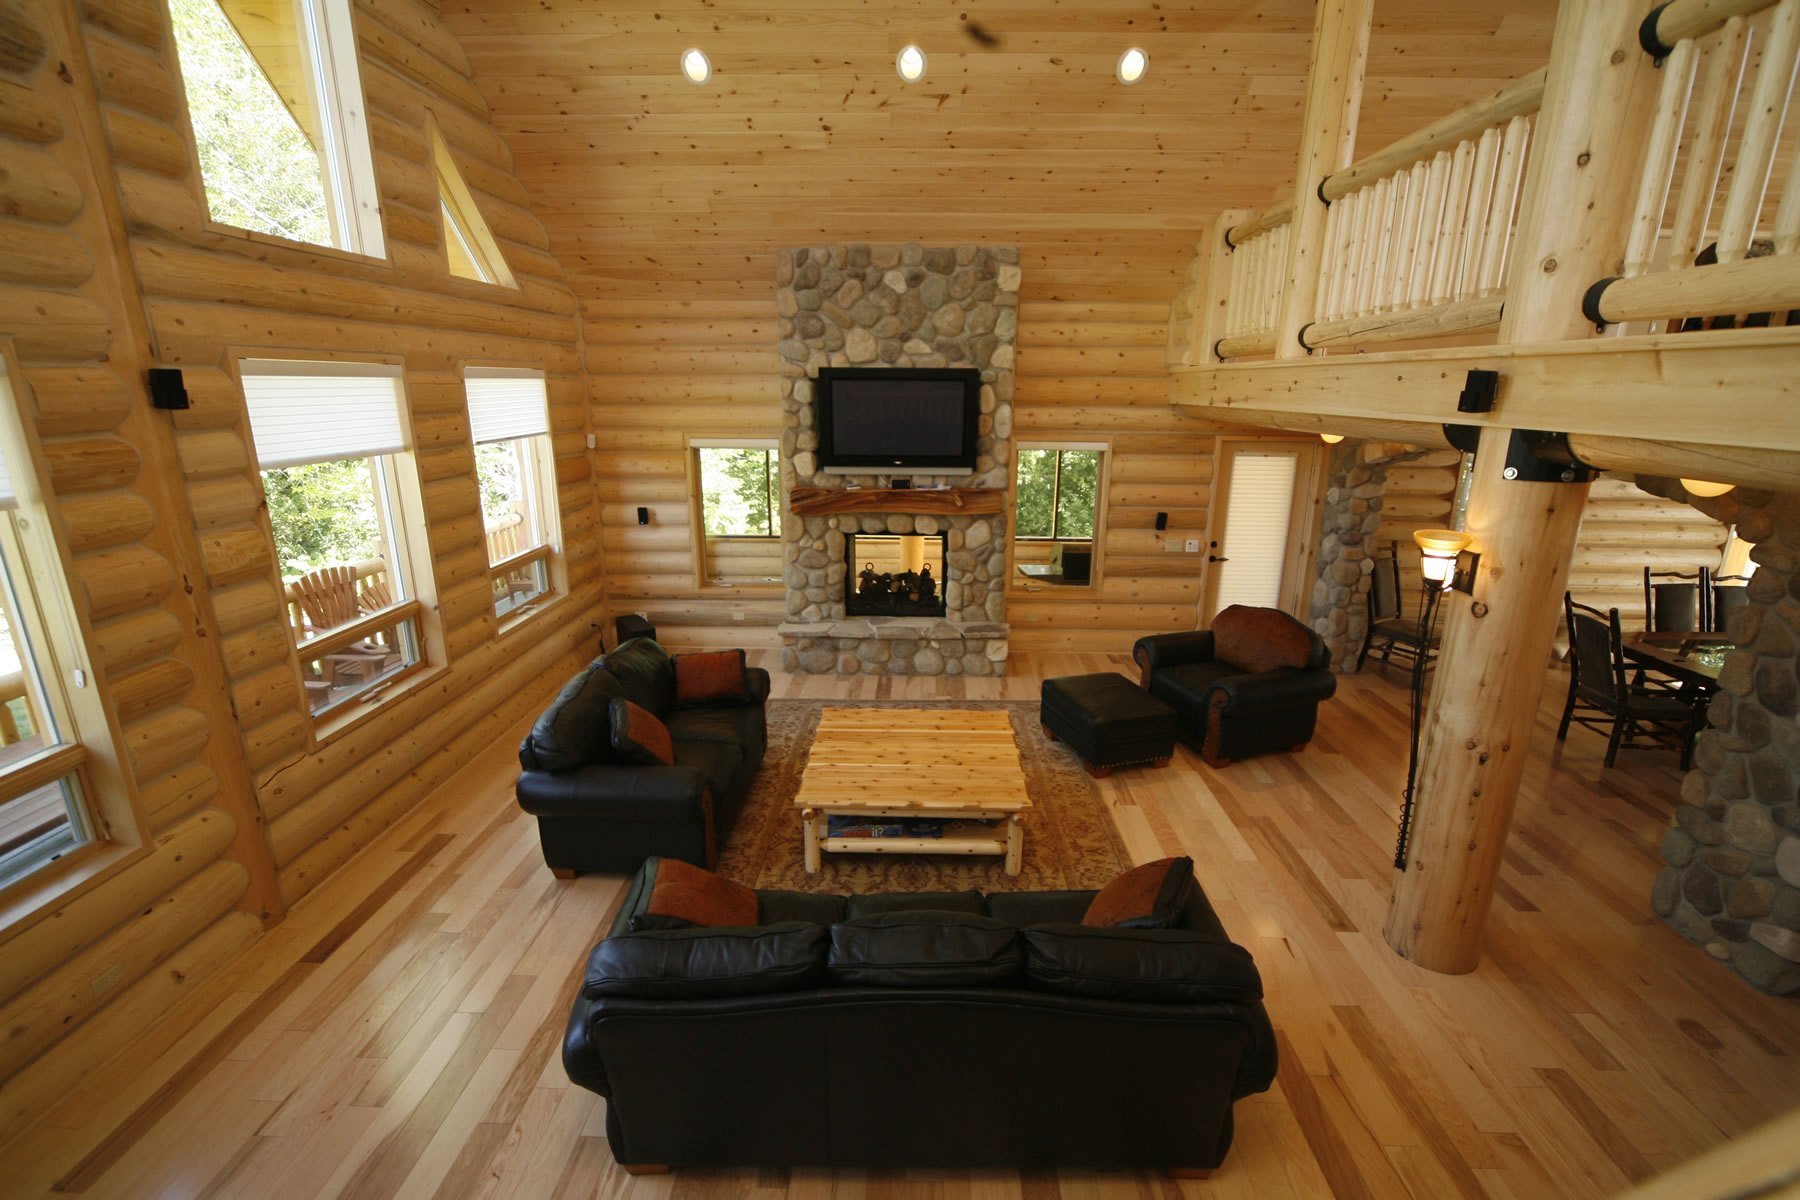 Whisper Creek Log Homes Oke Woodsmith Building Systems Inc